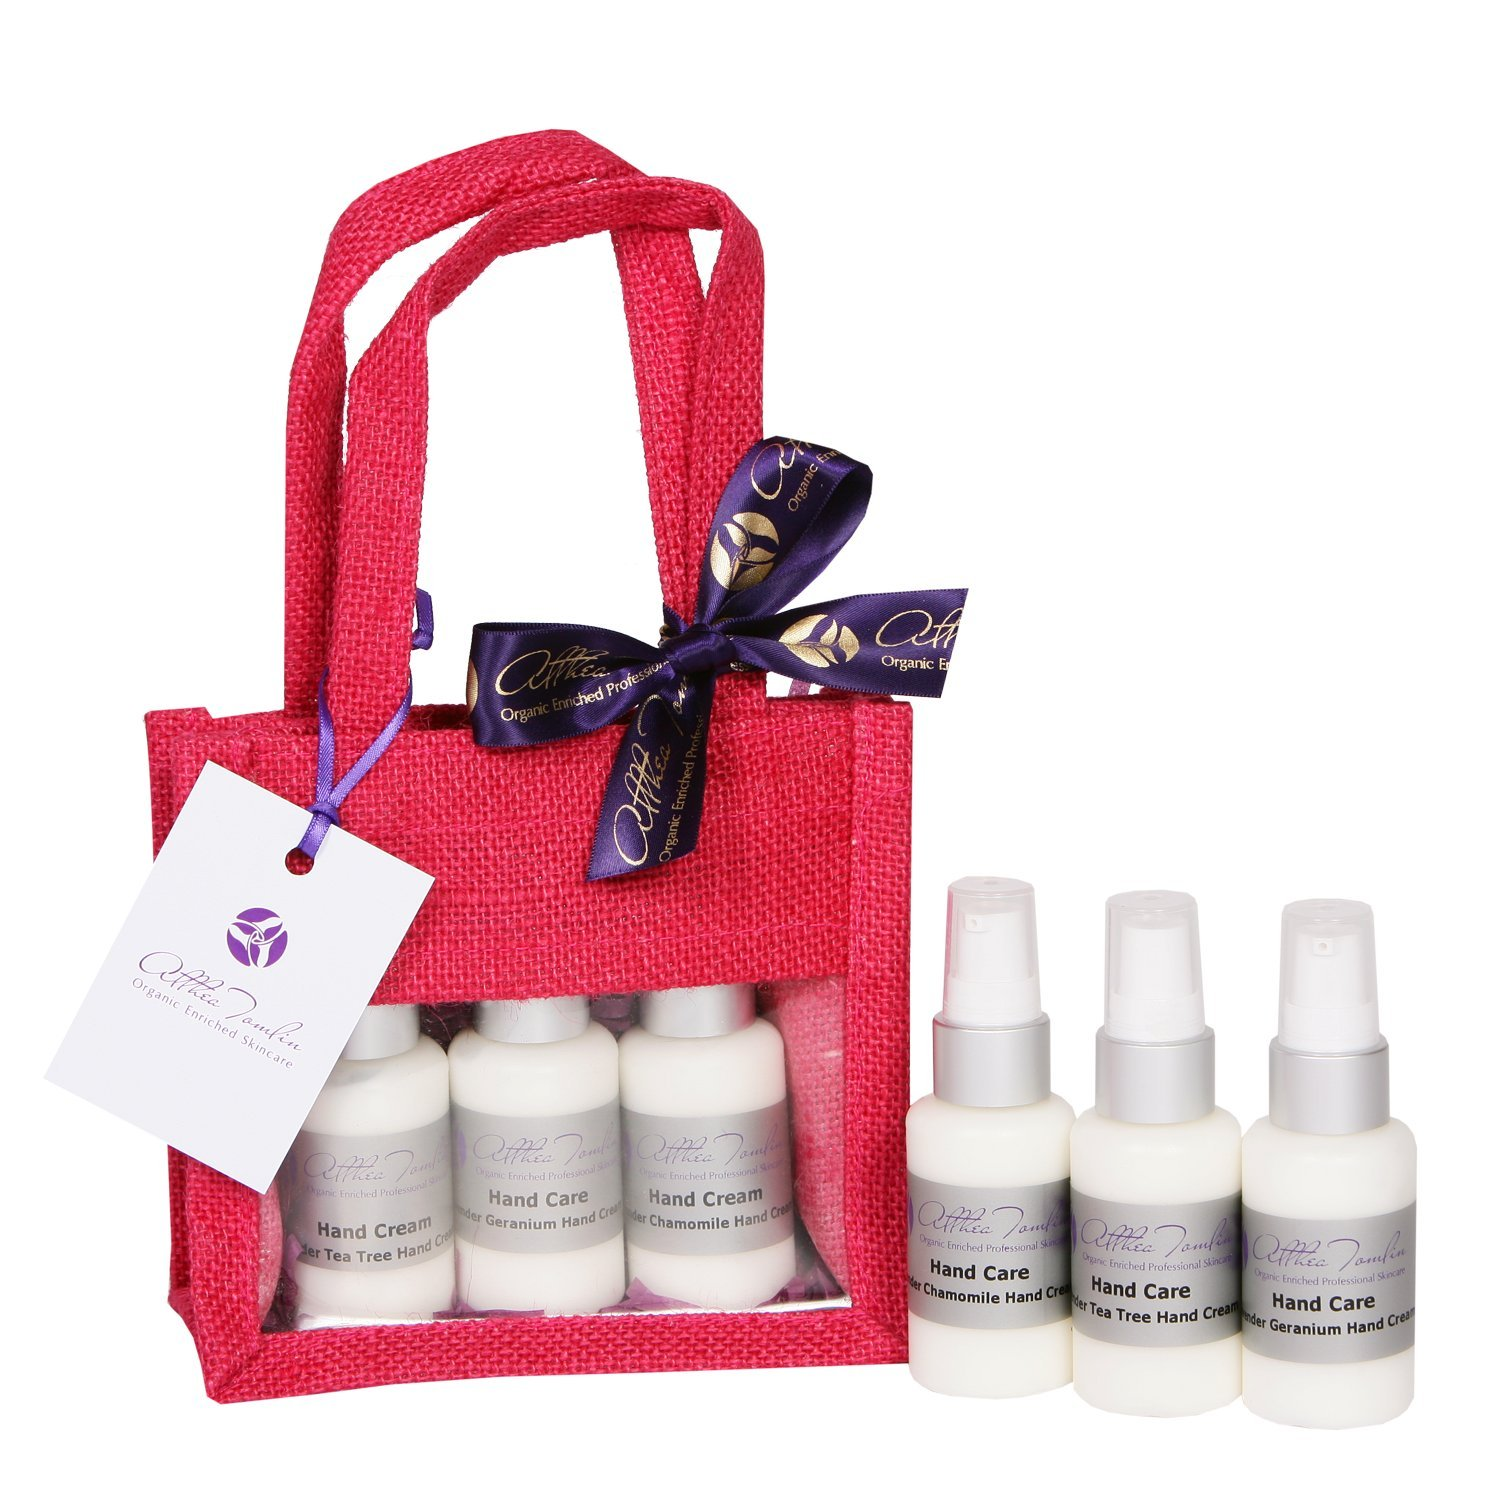 Christmas hand cream gift sets with organic lavender infused hand cream sets a hand care gift set for women with Lavender Chamomile Tea Tree and Geranium lavender hand and nail cream set for dry rough hands in a reusable eco-friendly natural hessian bag. A